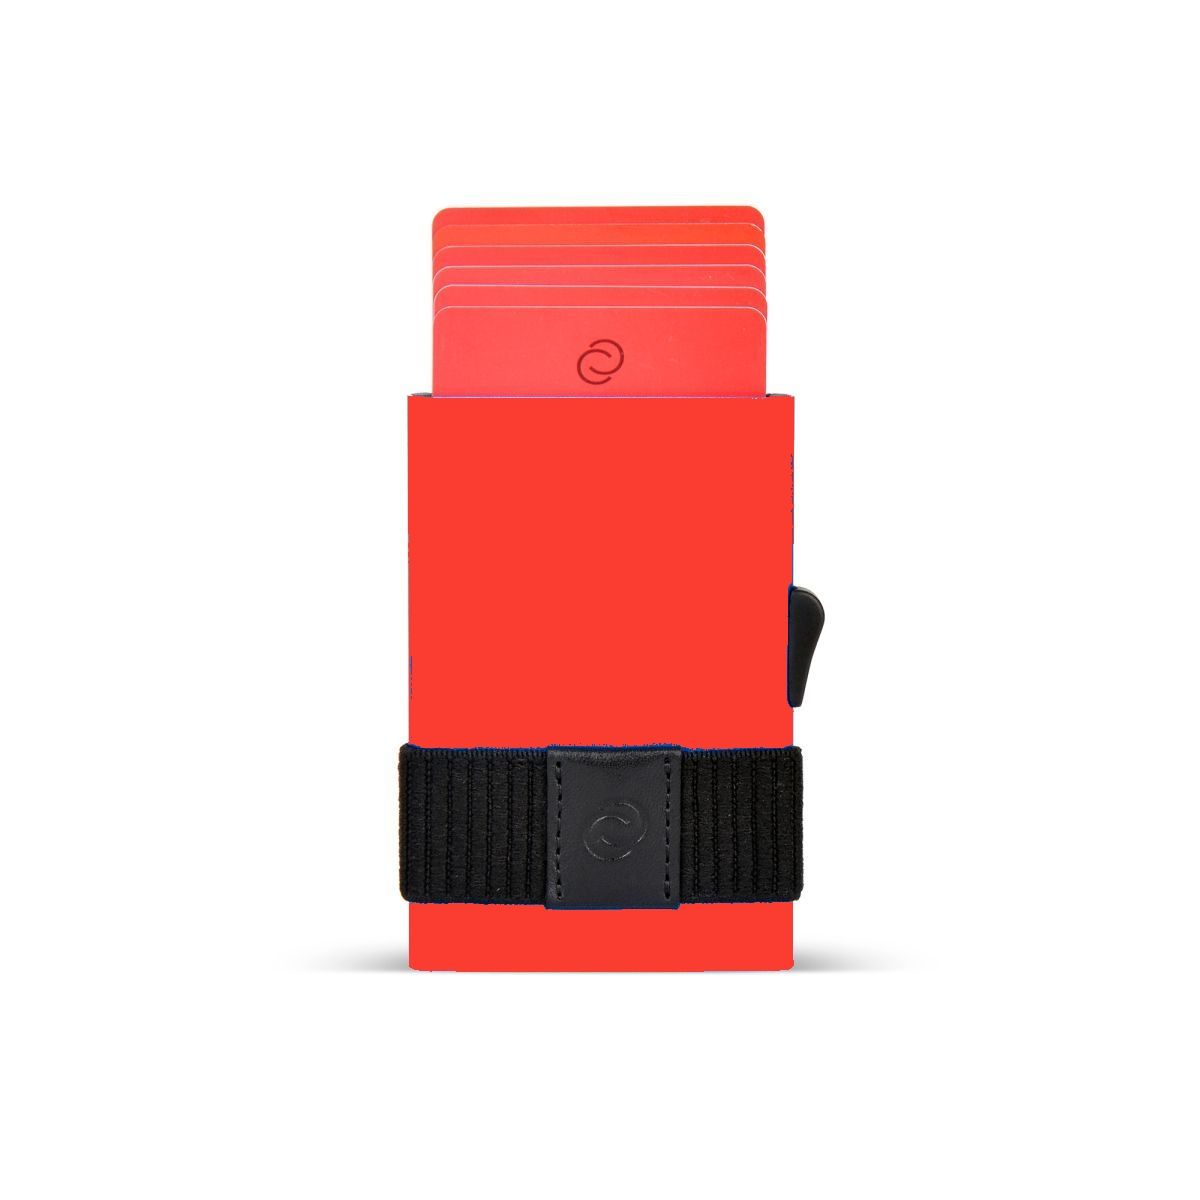 C-Secure Slim Aluminum Card Holder with Money Band - Red